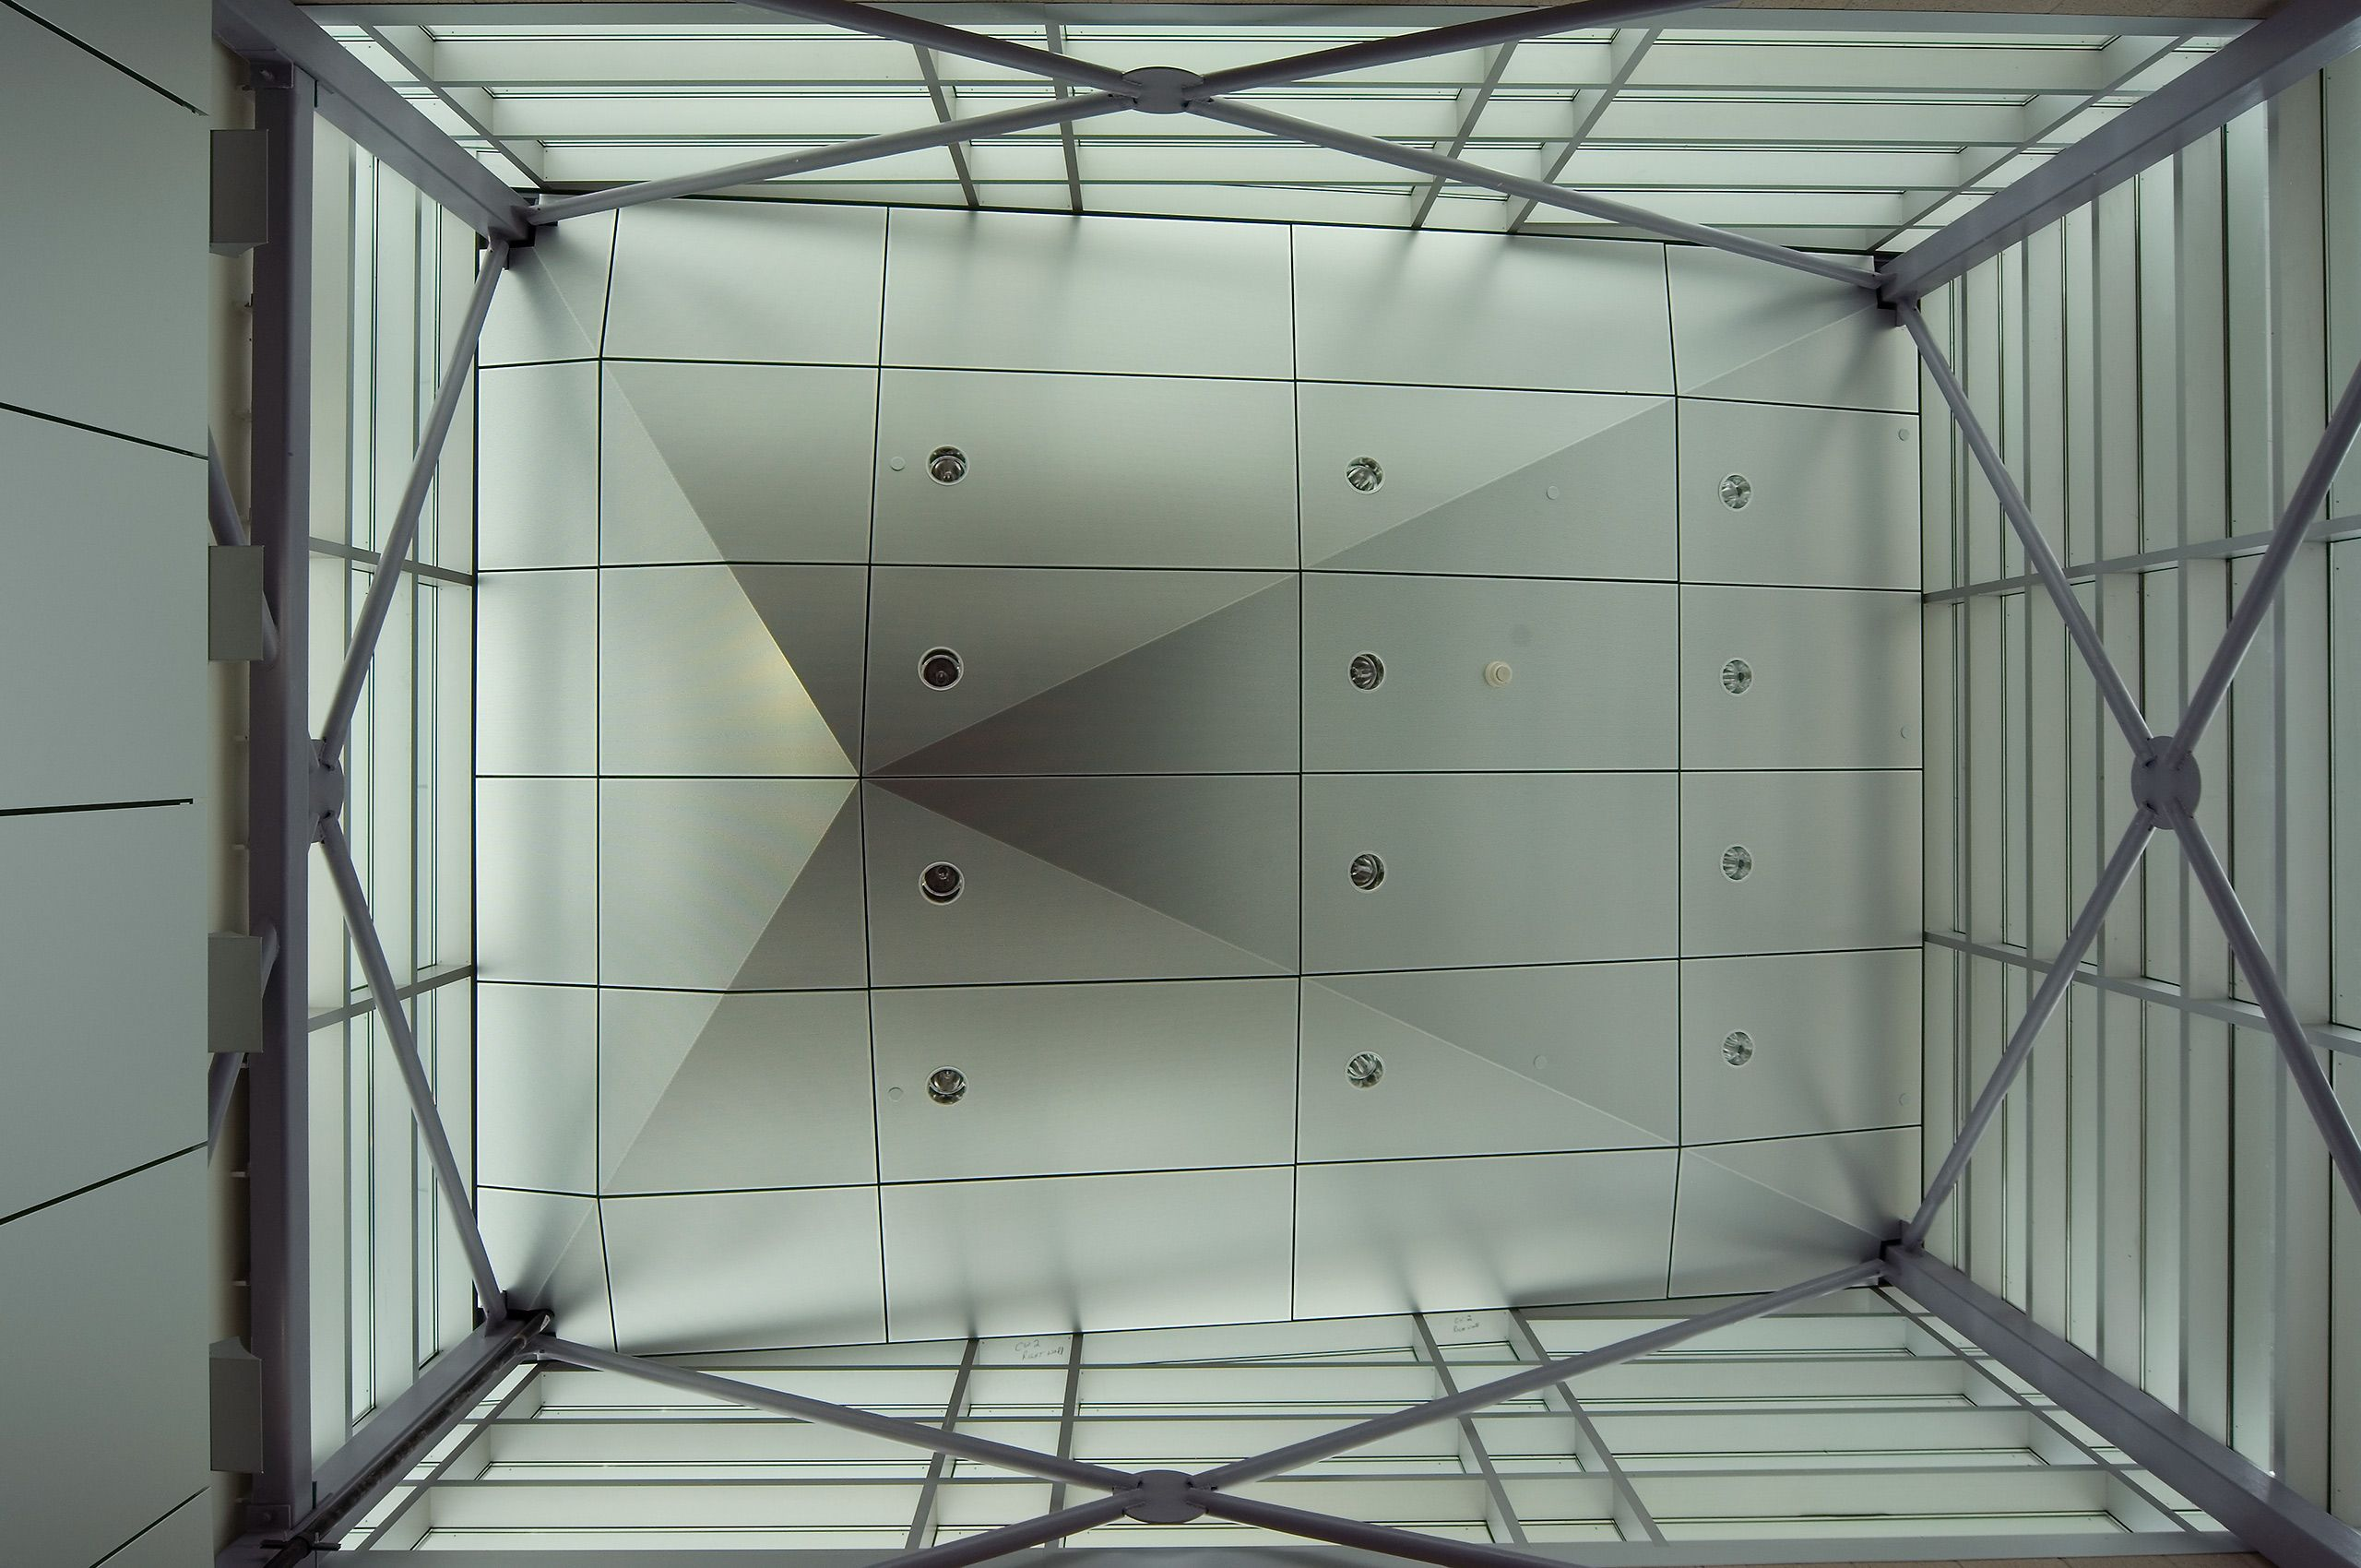 Athletic Building Ceiling, Tompkins Cortland Community College, Dryden, NY